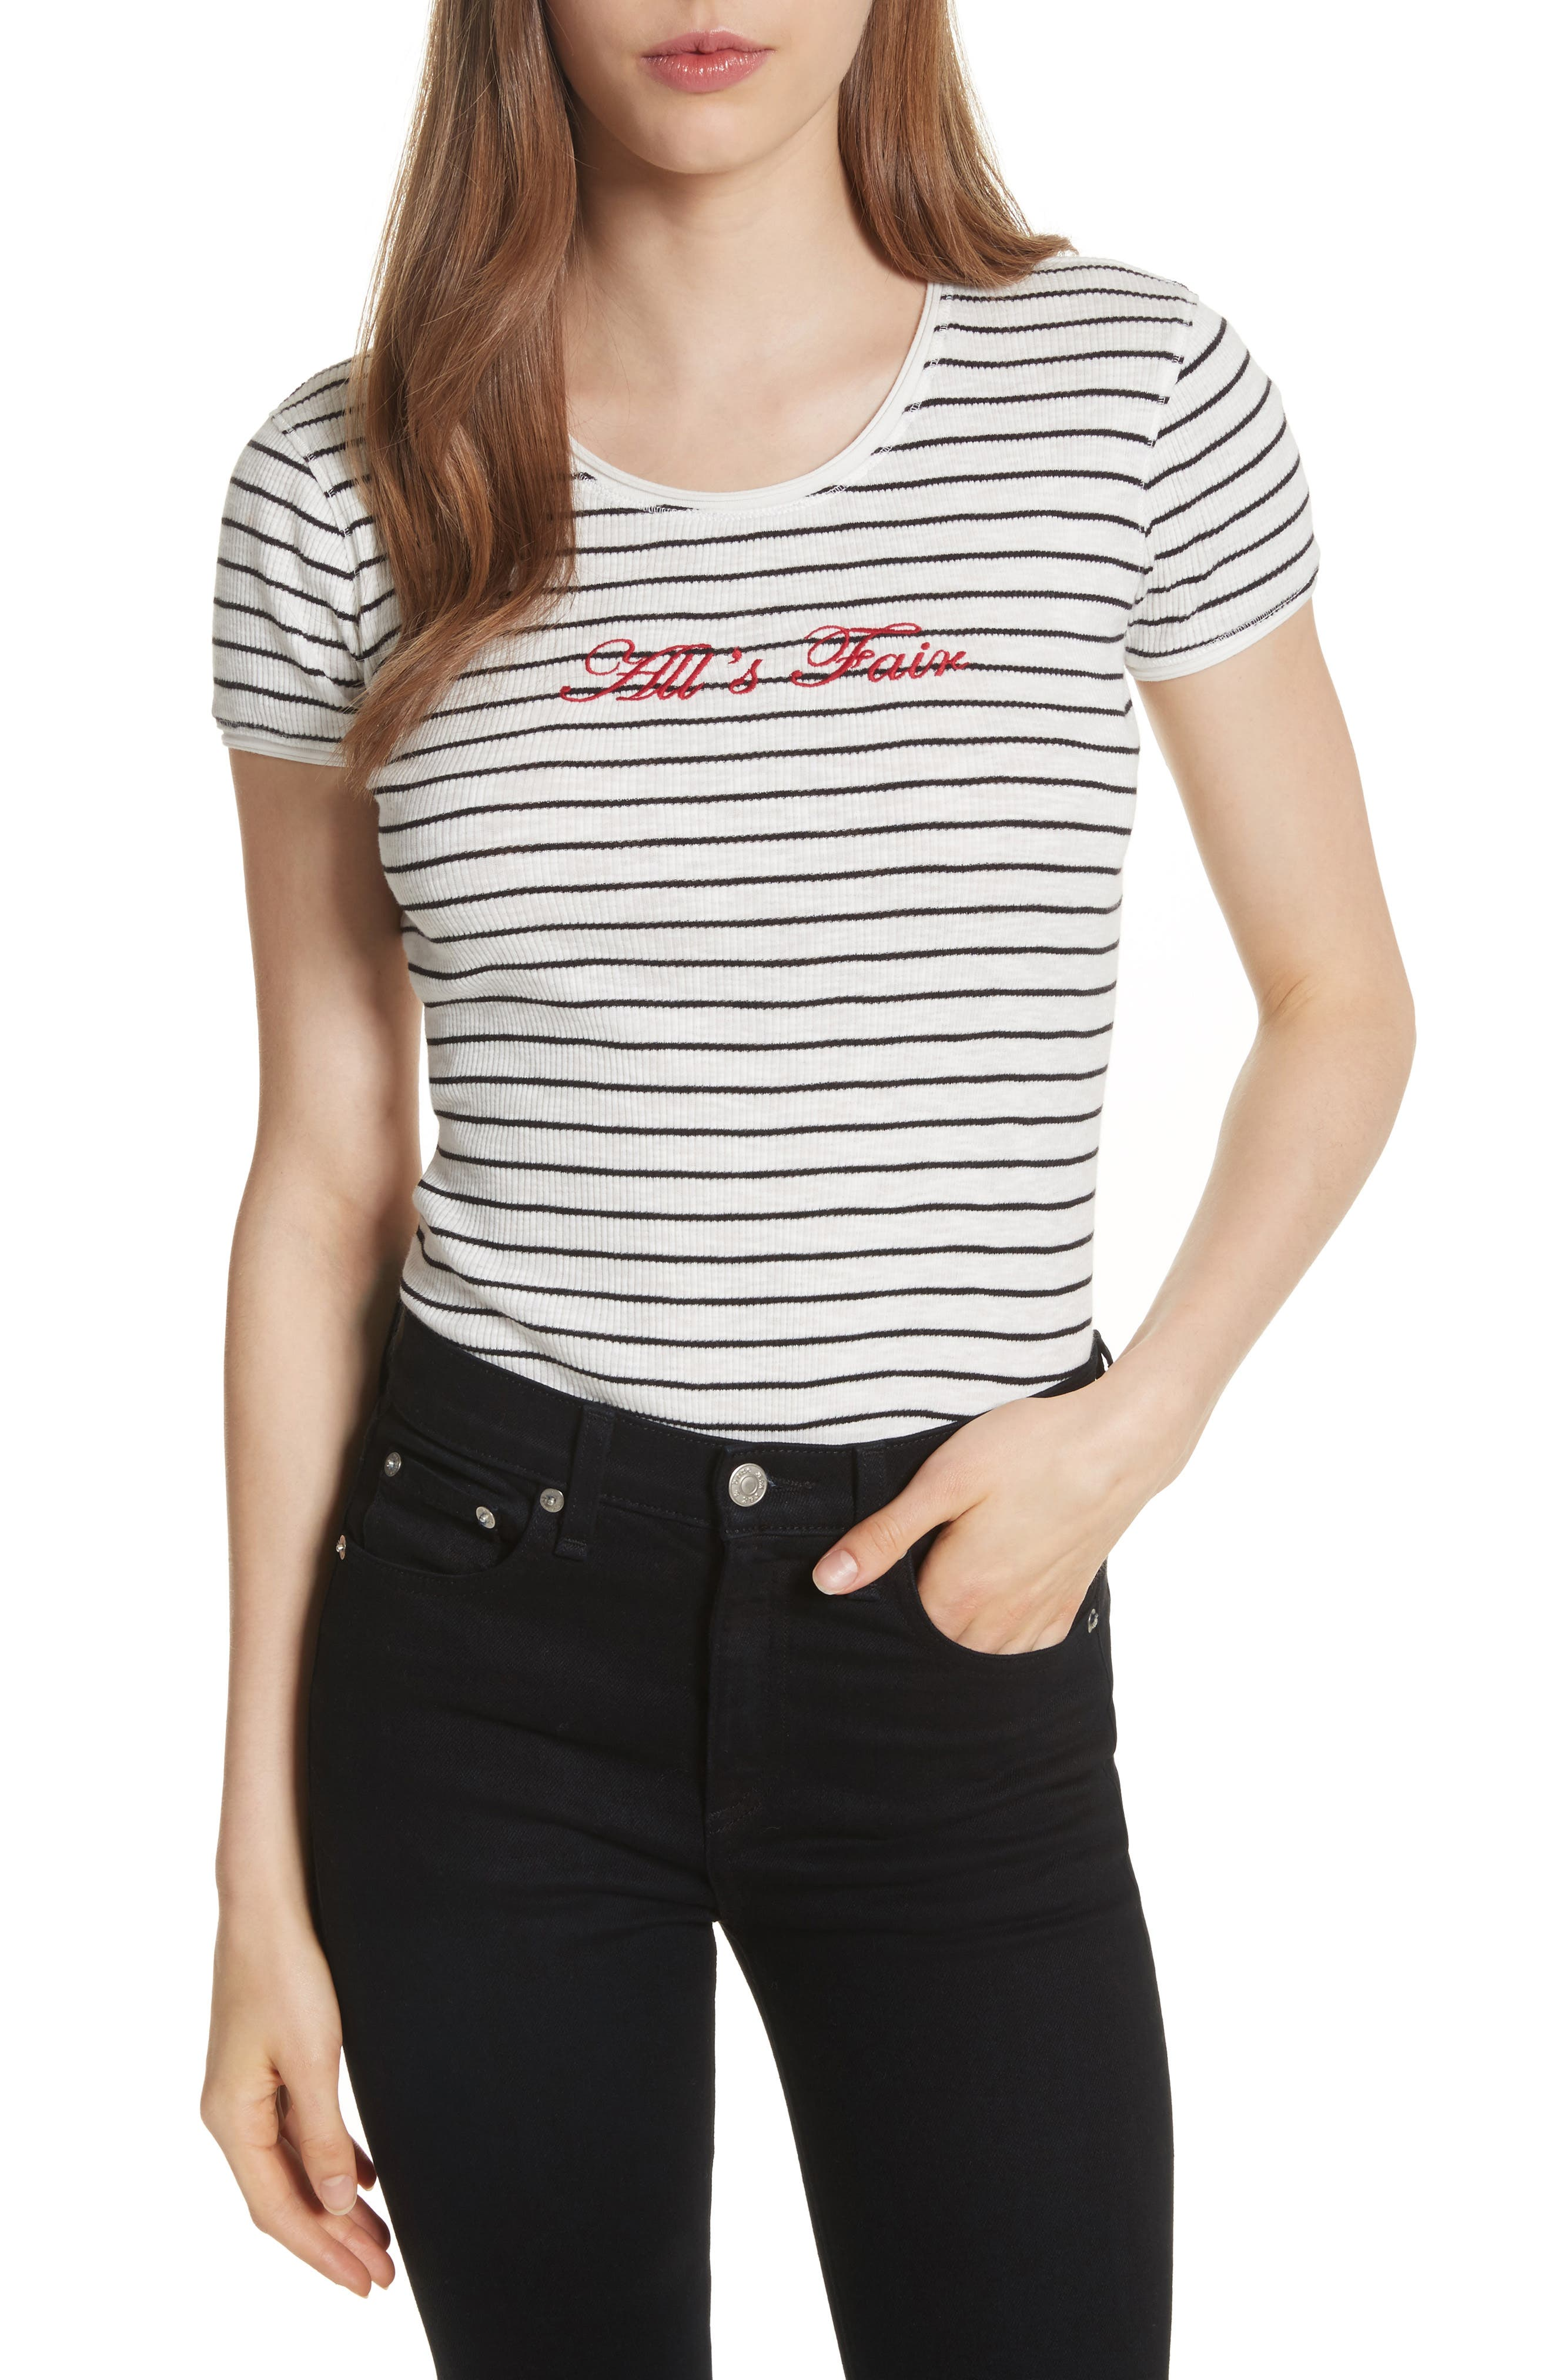 Embroidered Lilies Tee,                             Main thumbnail 1, color,                             194